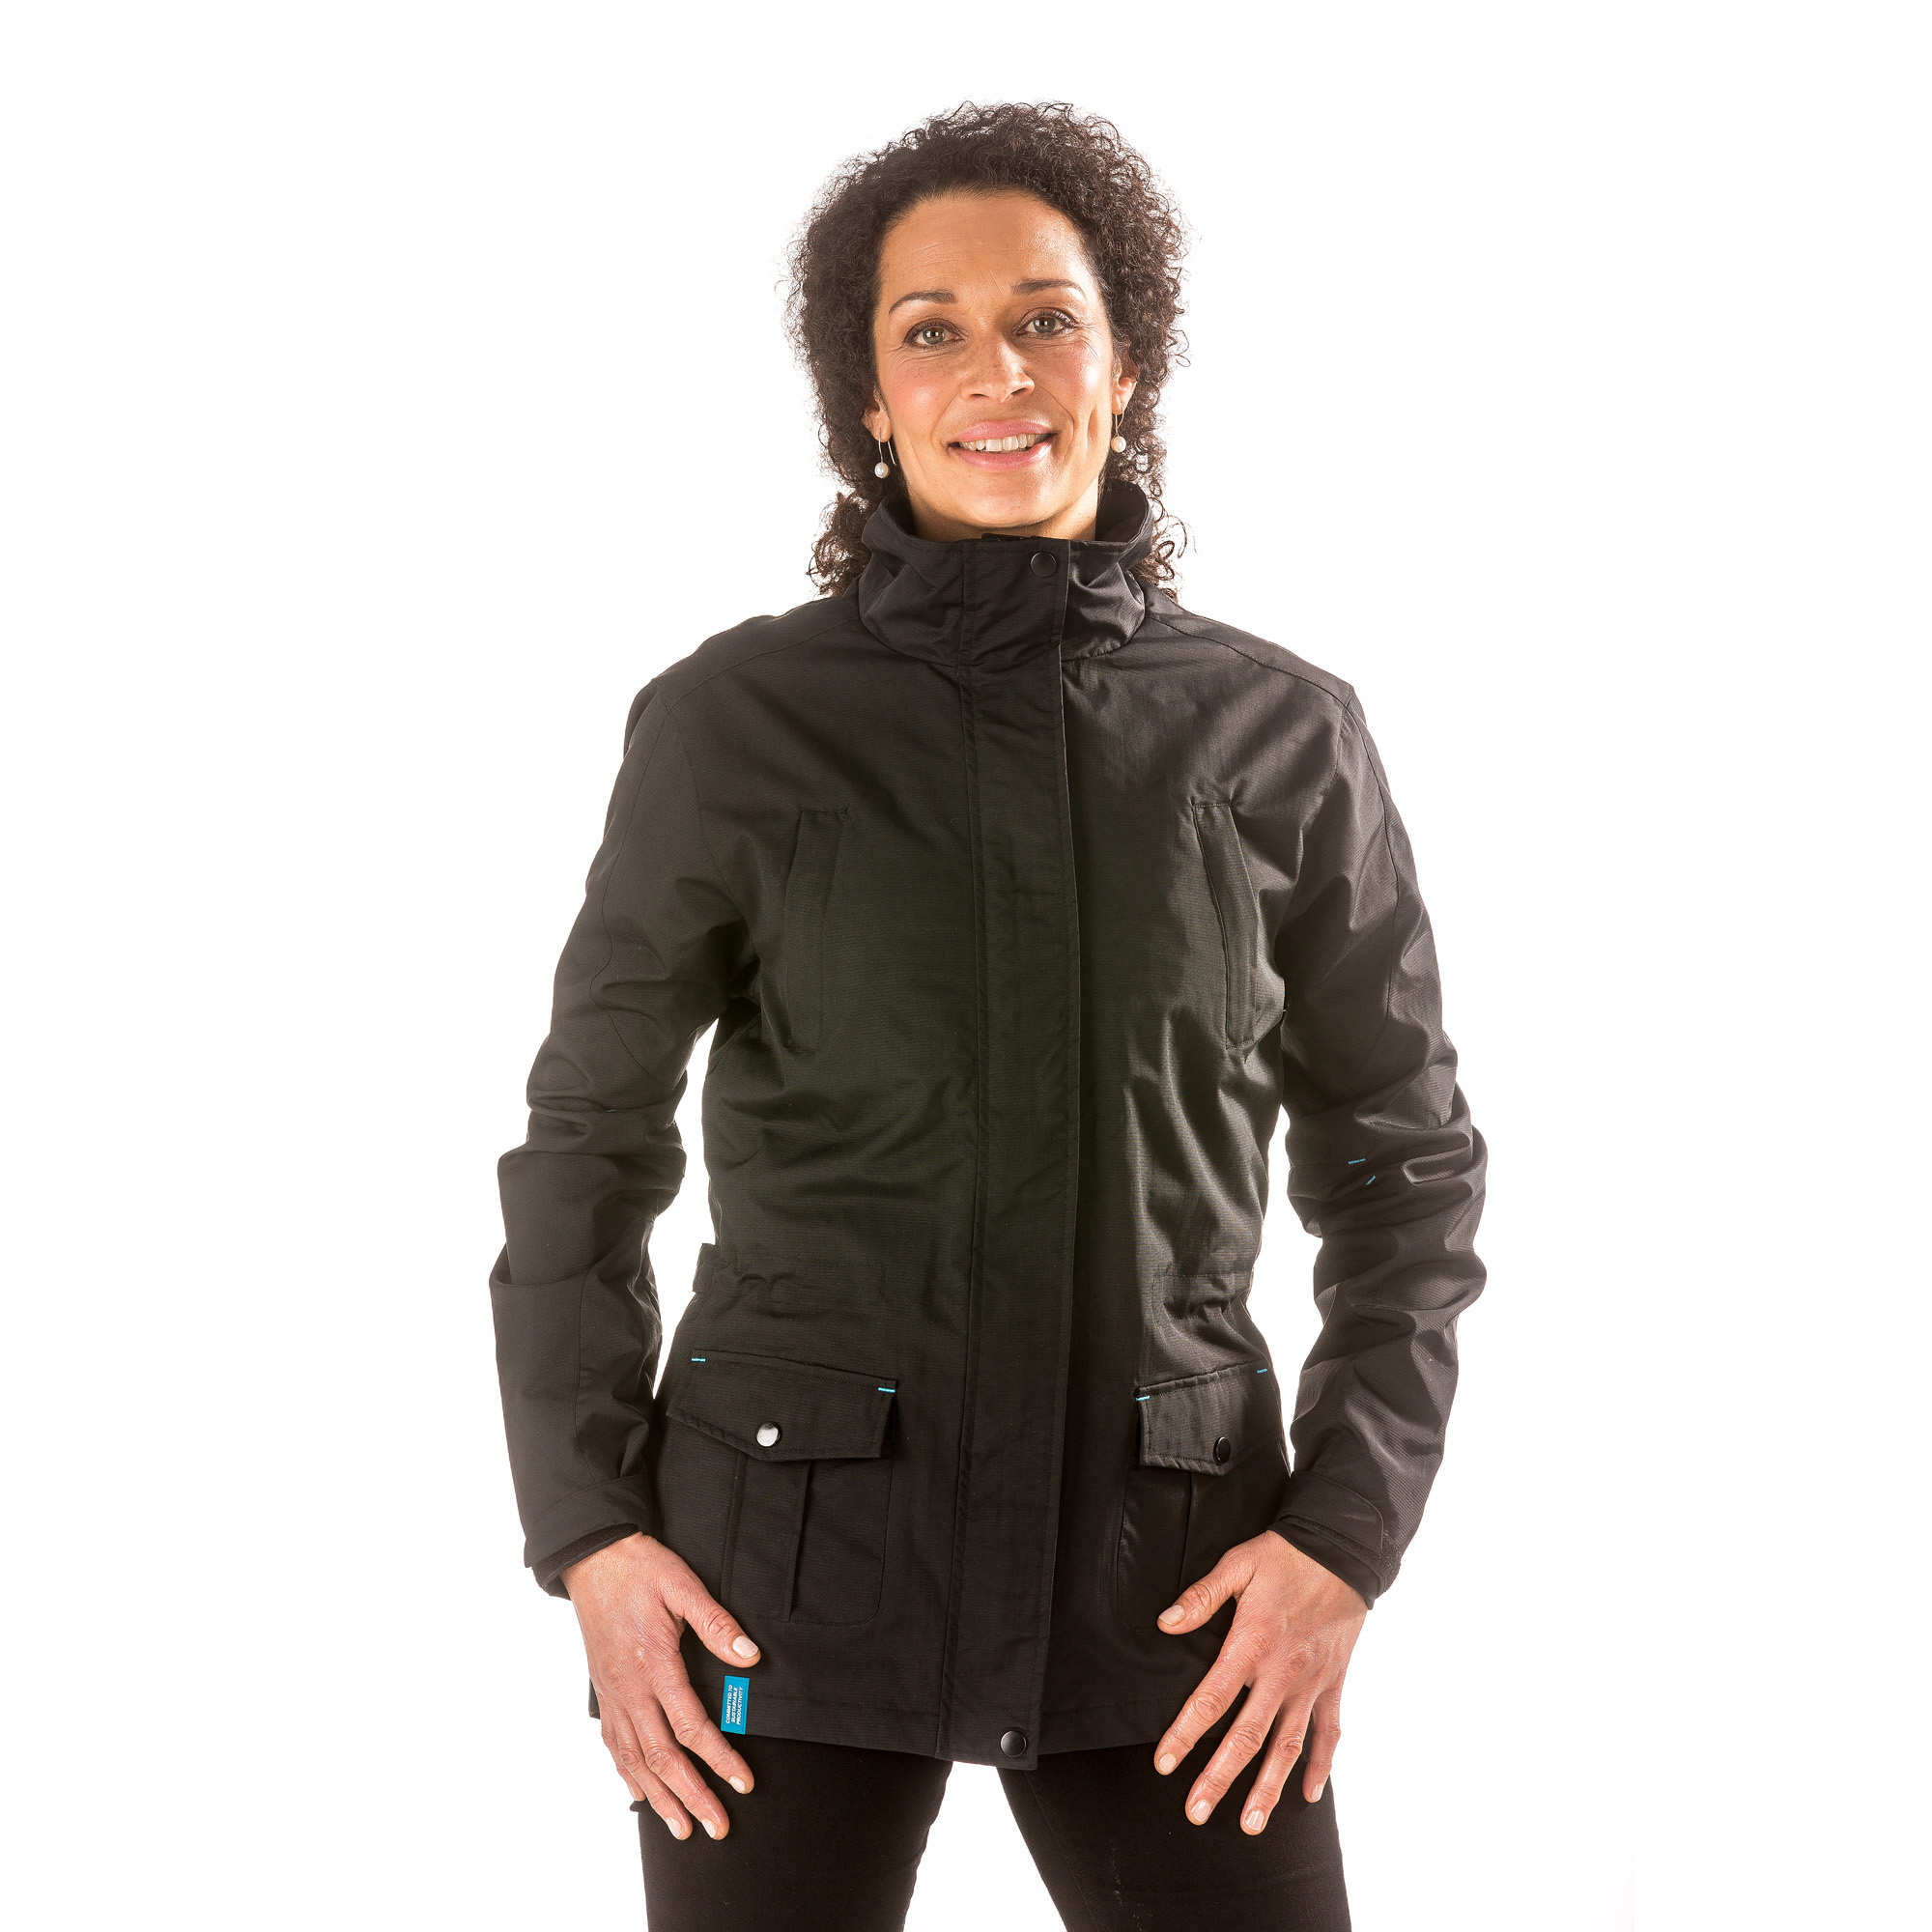 A Crossover jacket with cool pockets and a nice designed details. This jacket is suitable for both strolling at the seaside and hanging out in the city. It is a cool jacket that reflects an urban lifestyle